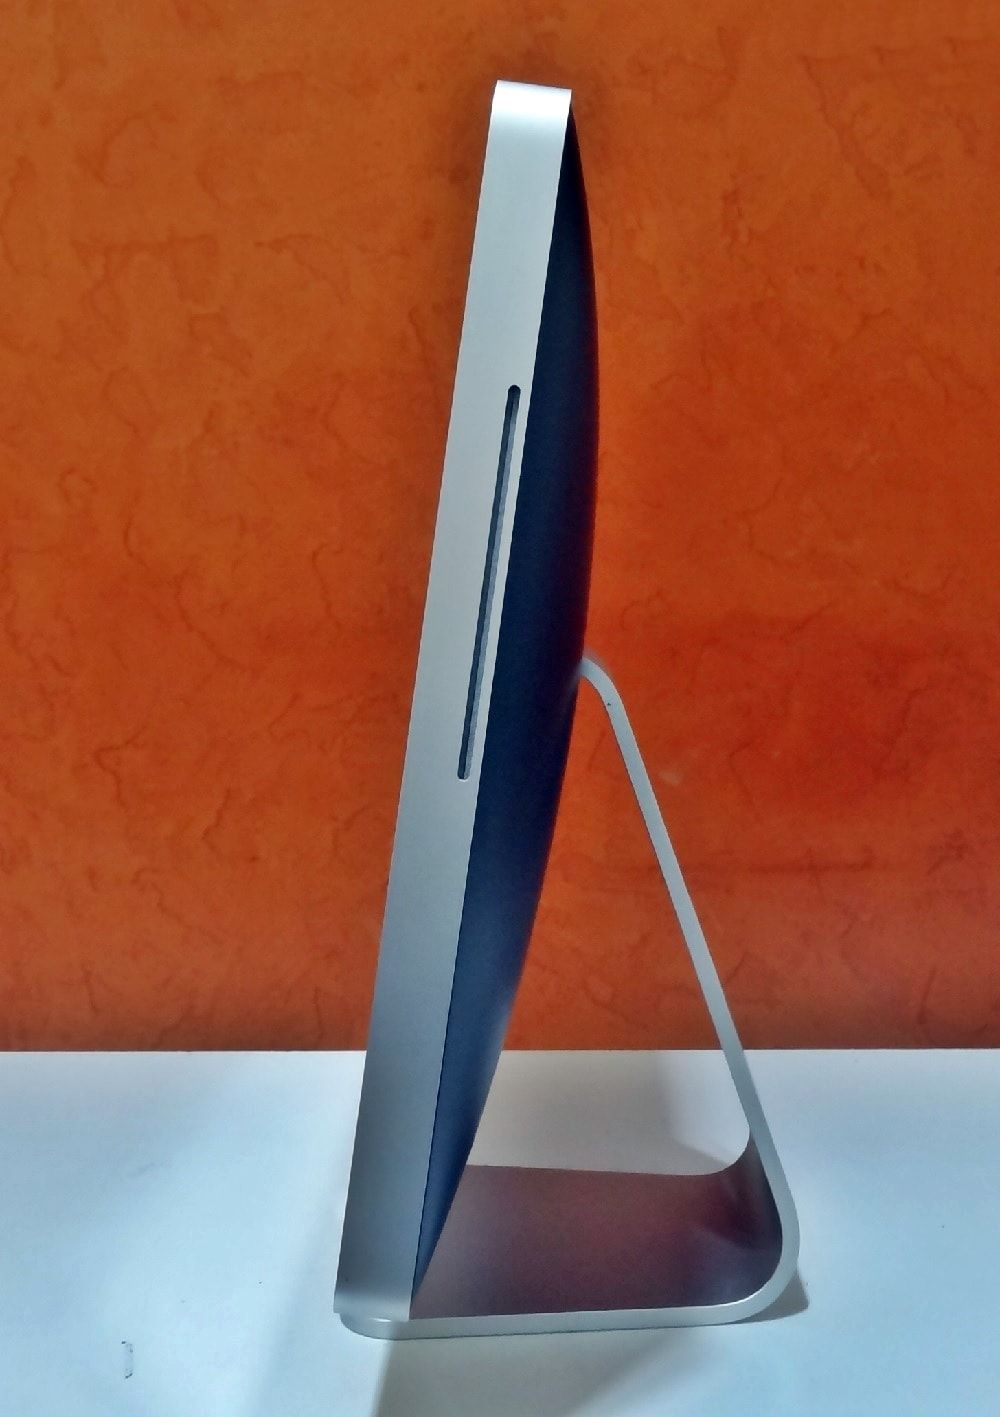 iMac MA876LL/A 20'' Intel Core 2 DUO 2.00GHz 4GB HD-500GB | DEDICADA - 128MB